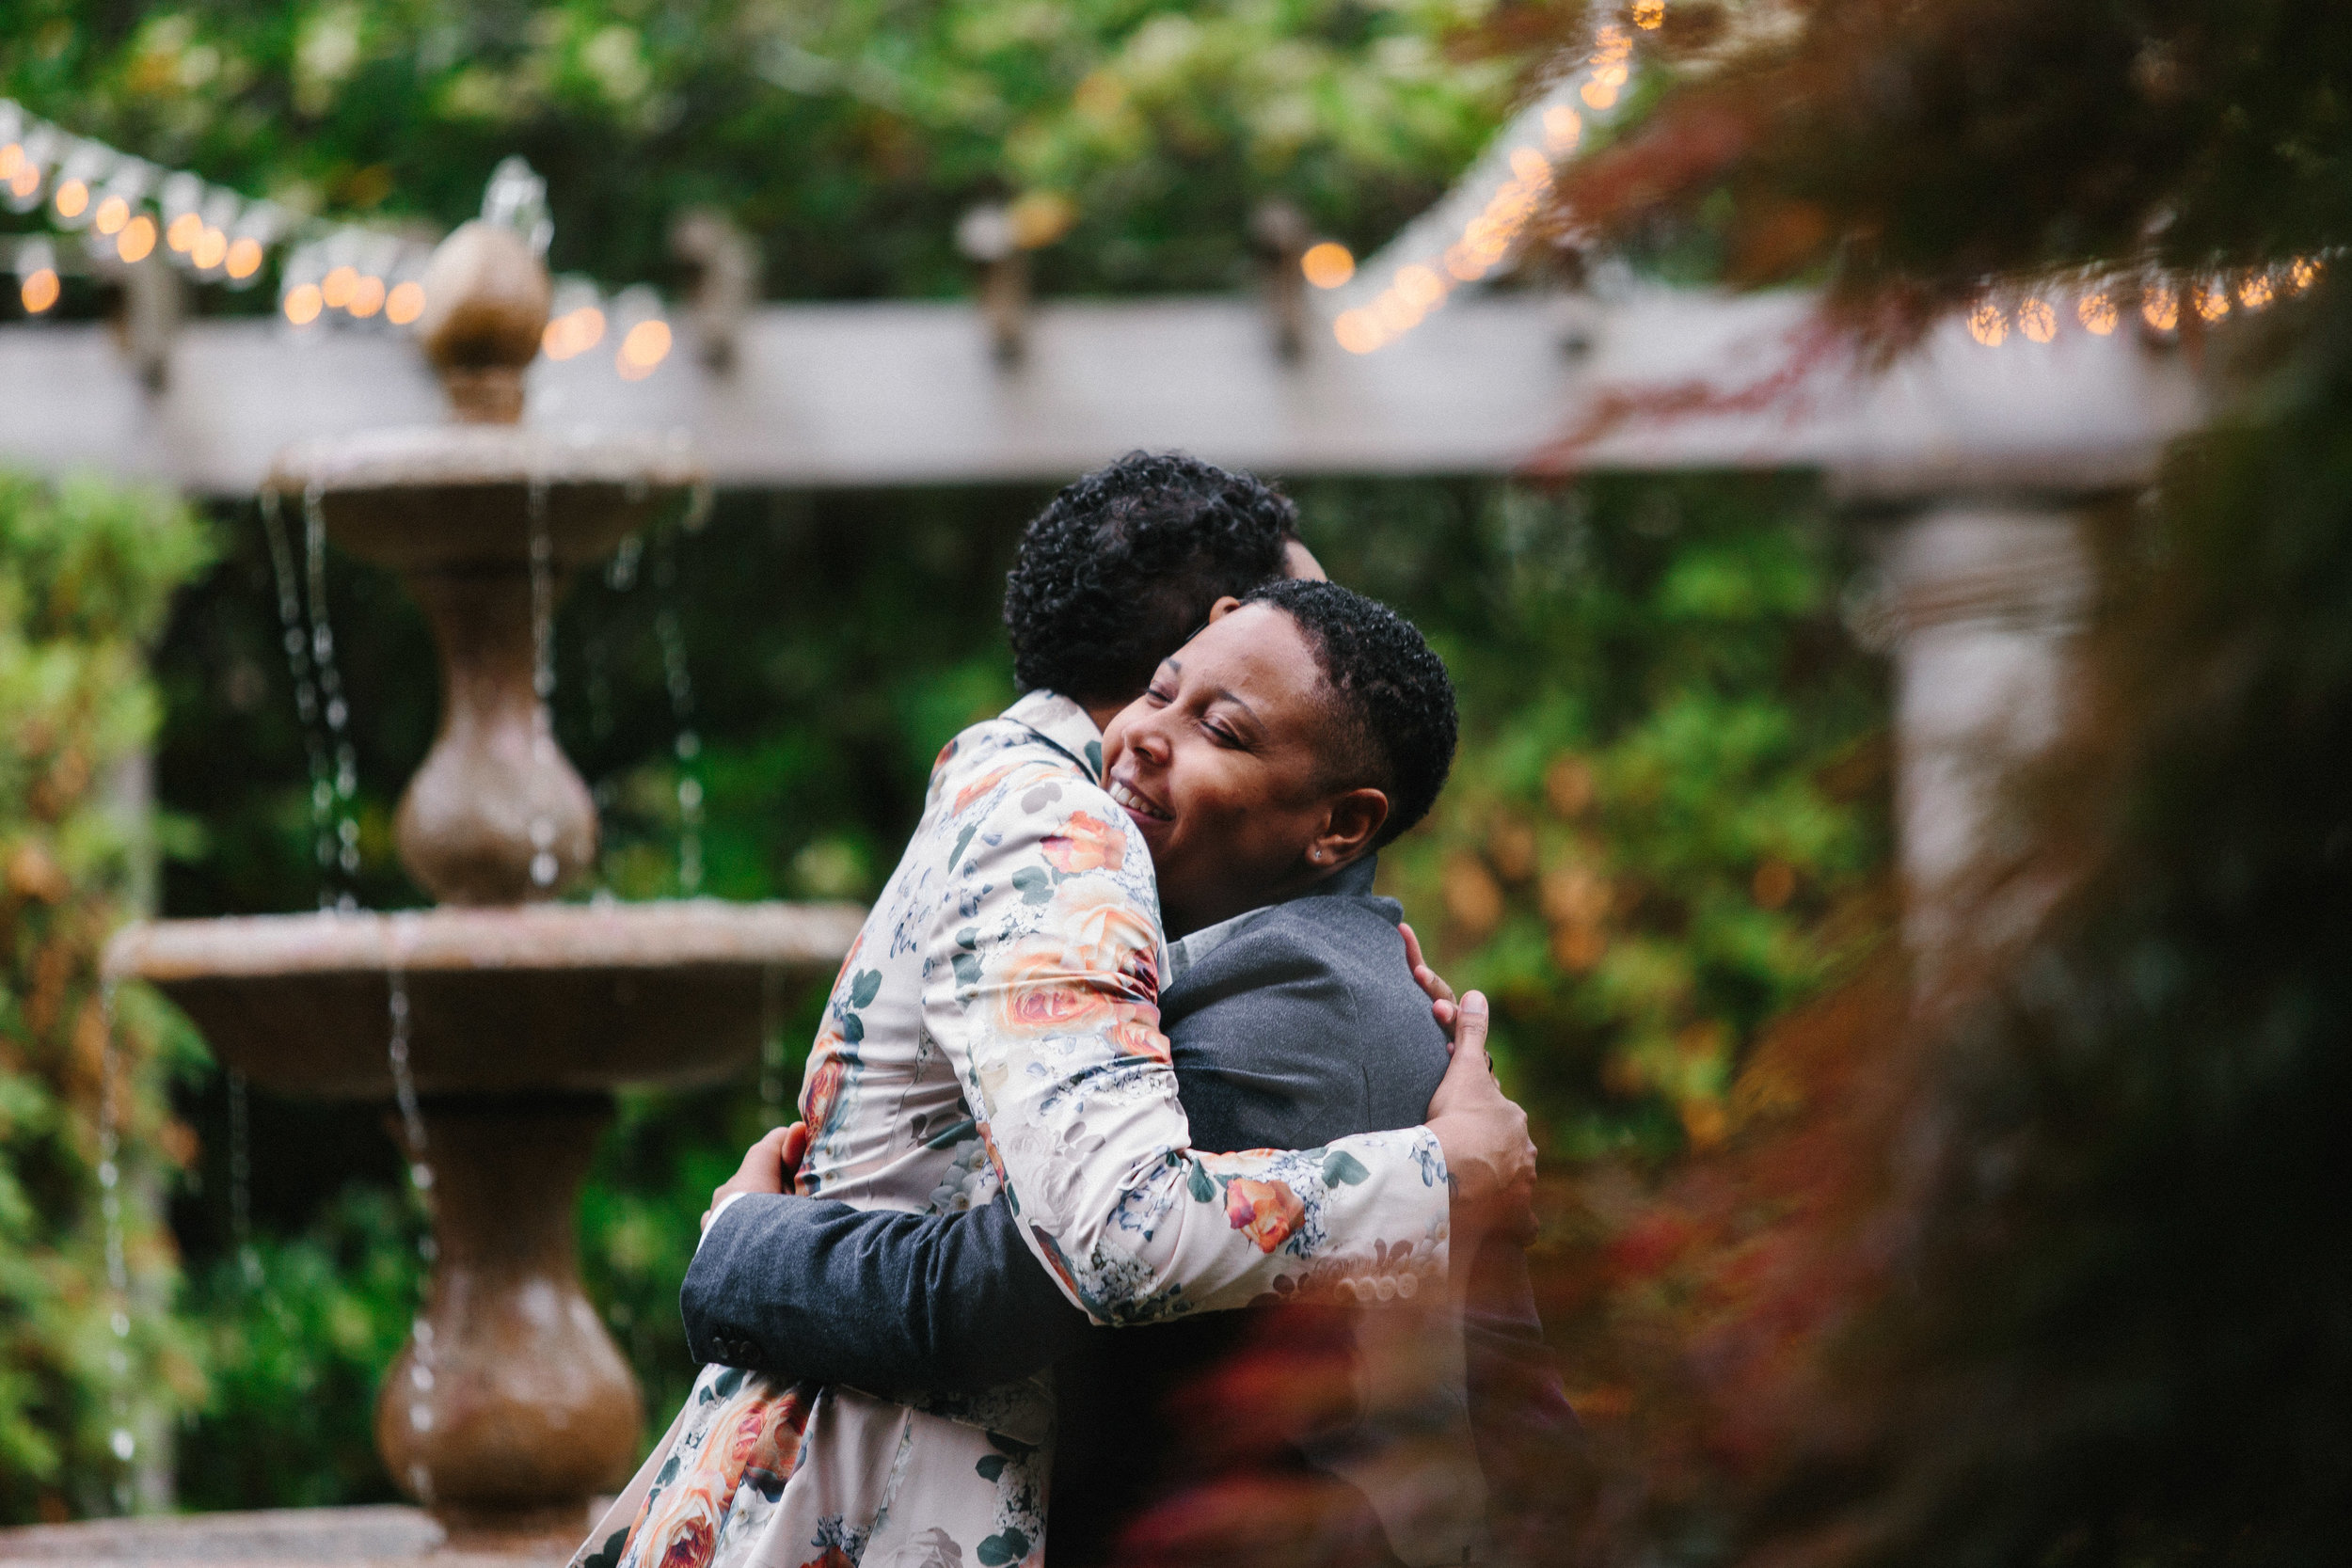 the_atrium_wedding_atlanta_norcross_lifestyle_photographers_lgbtq_1651.jpg